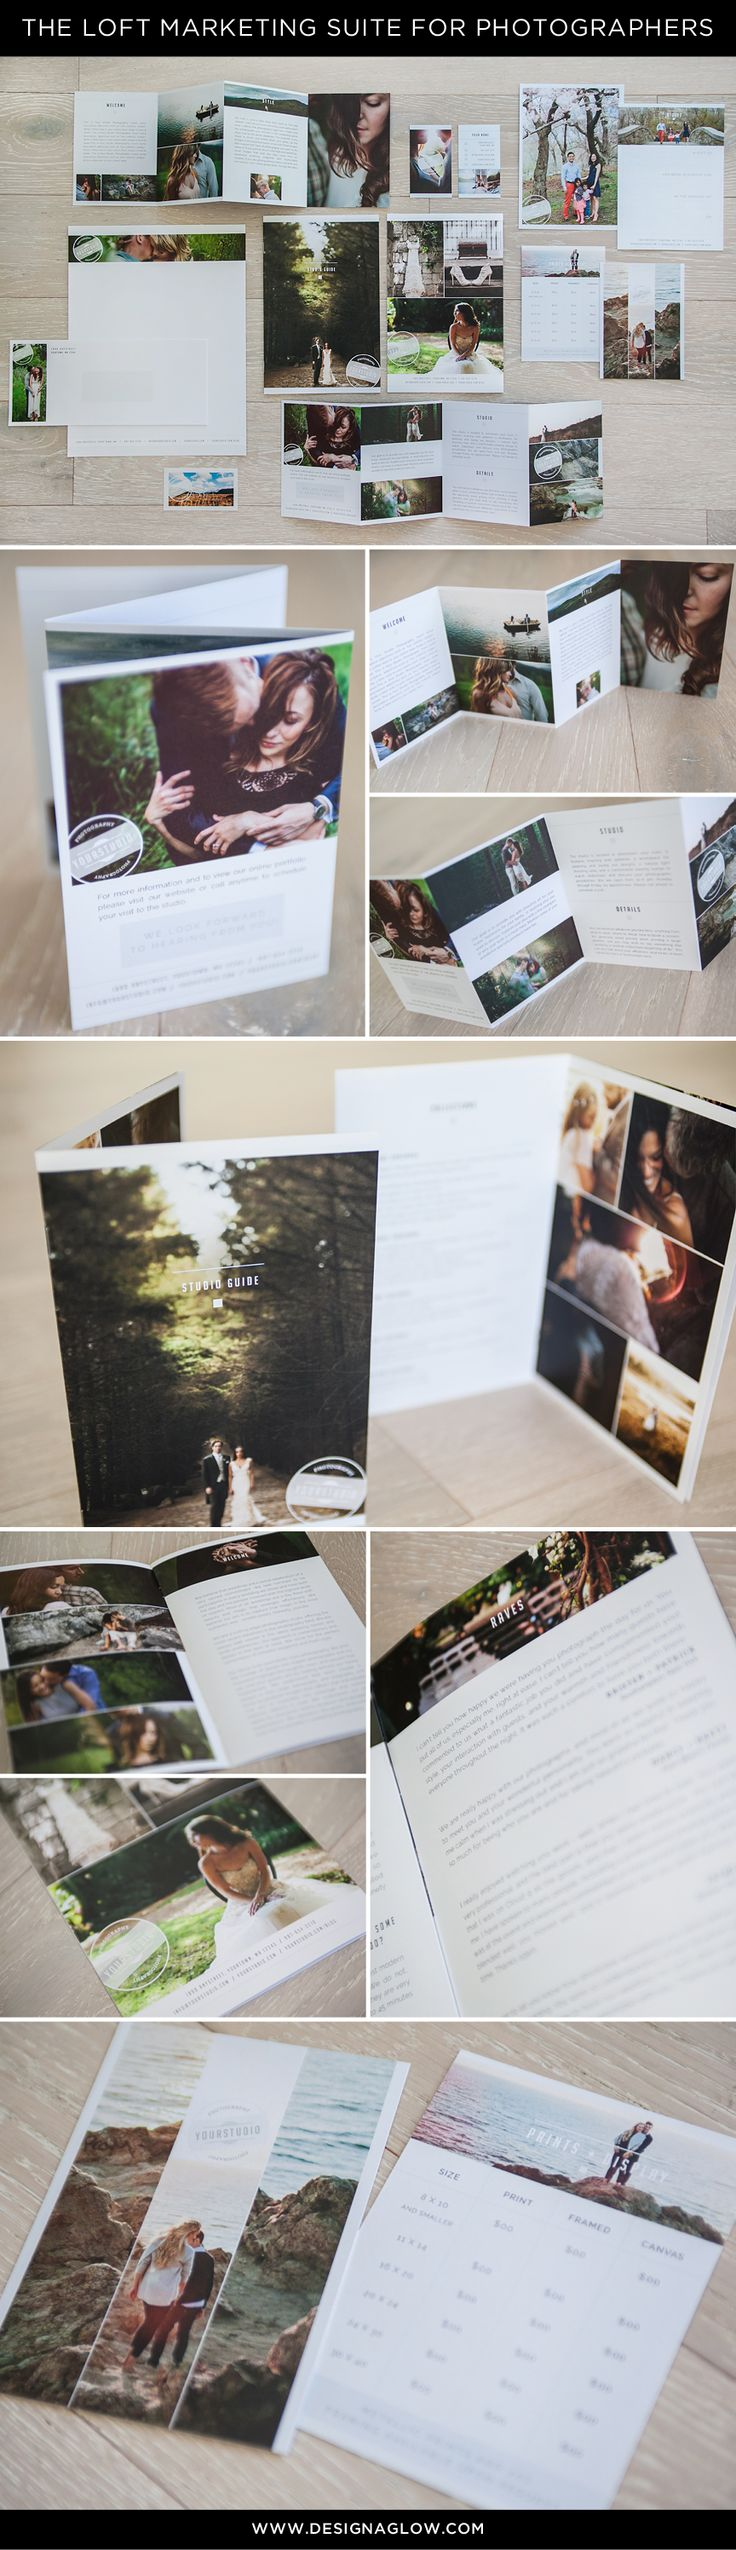 The Loft Marketing Suite for Photographers: Impressing your clients has never been easier! #designaglow